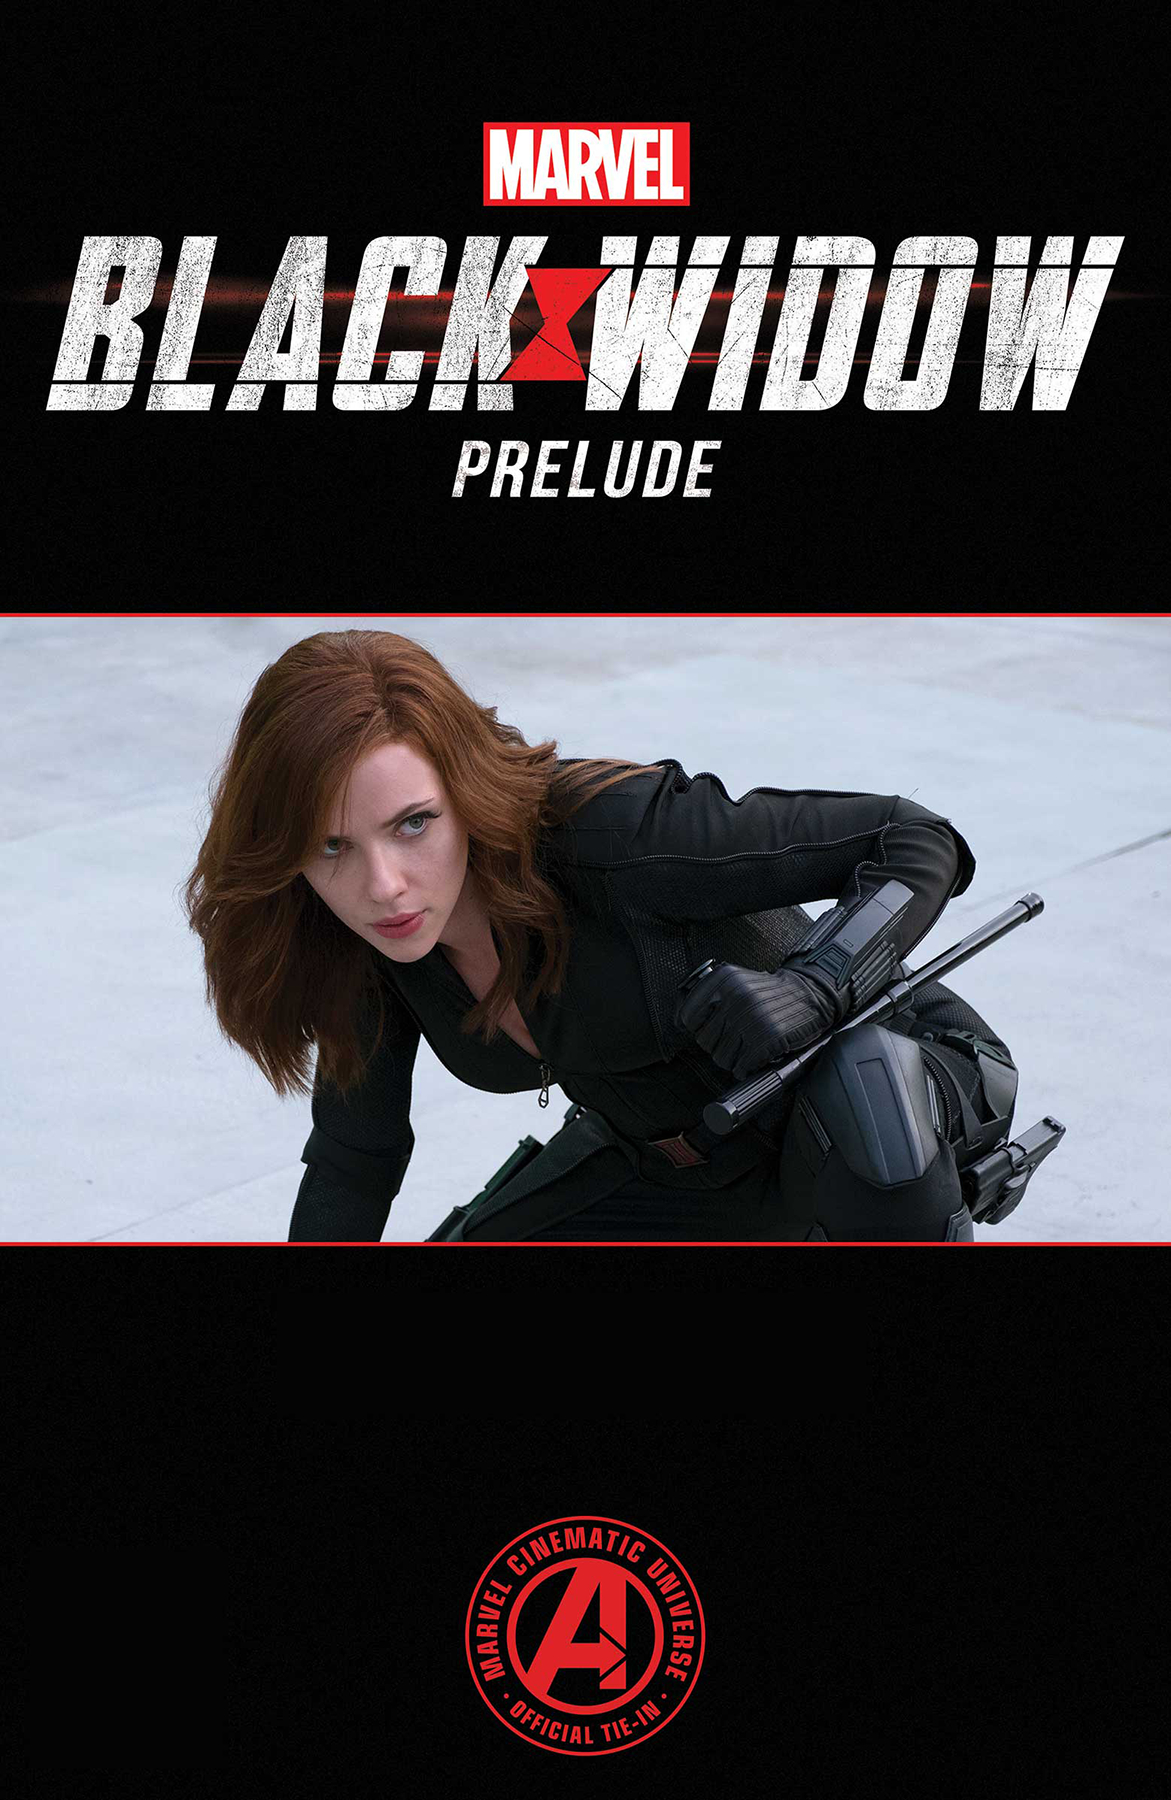 MARVELS BLACK WIDOW PRELUDE #2 (OF 2)